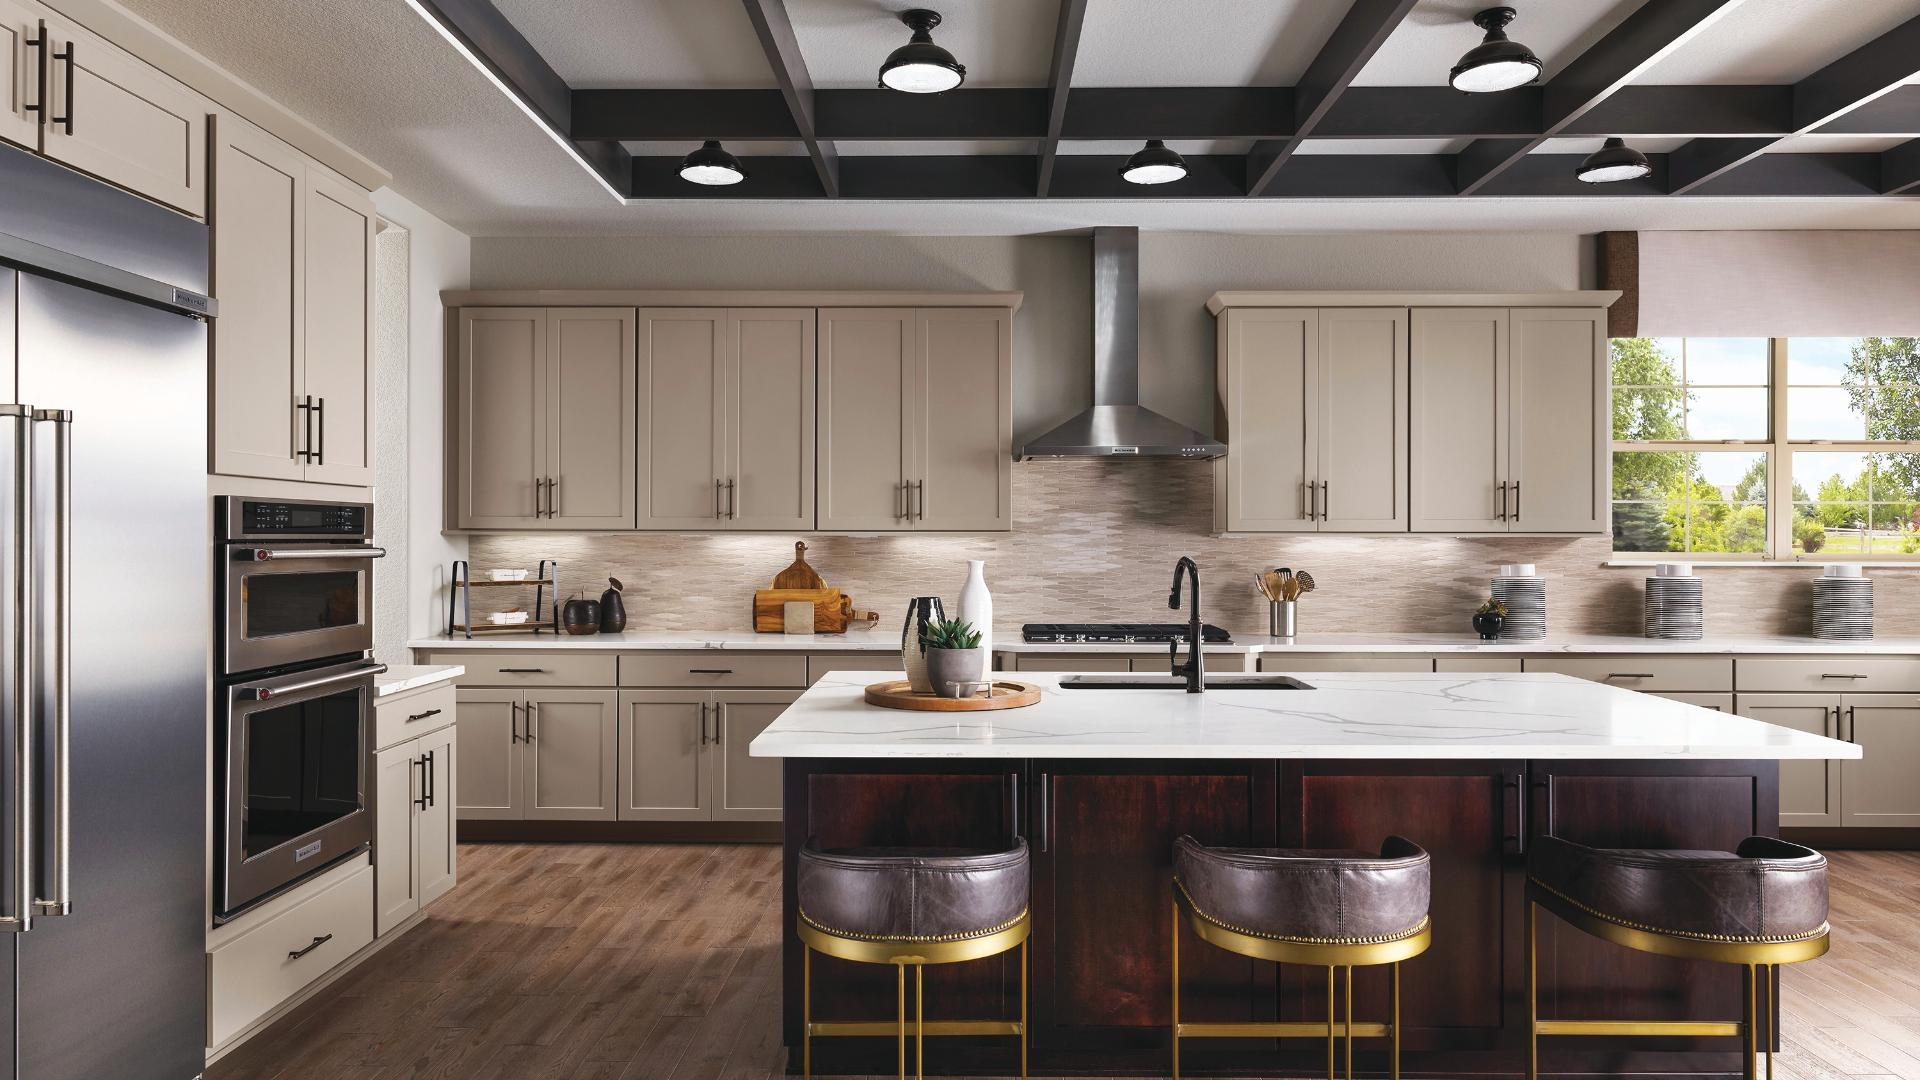 Dillon kitchen with island seating